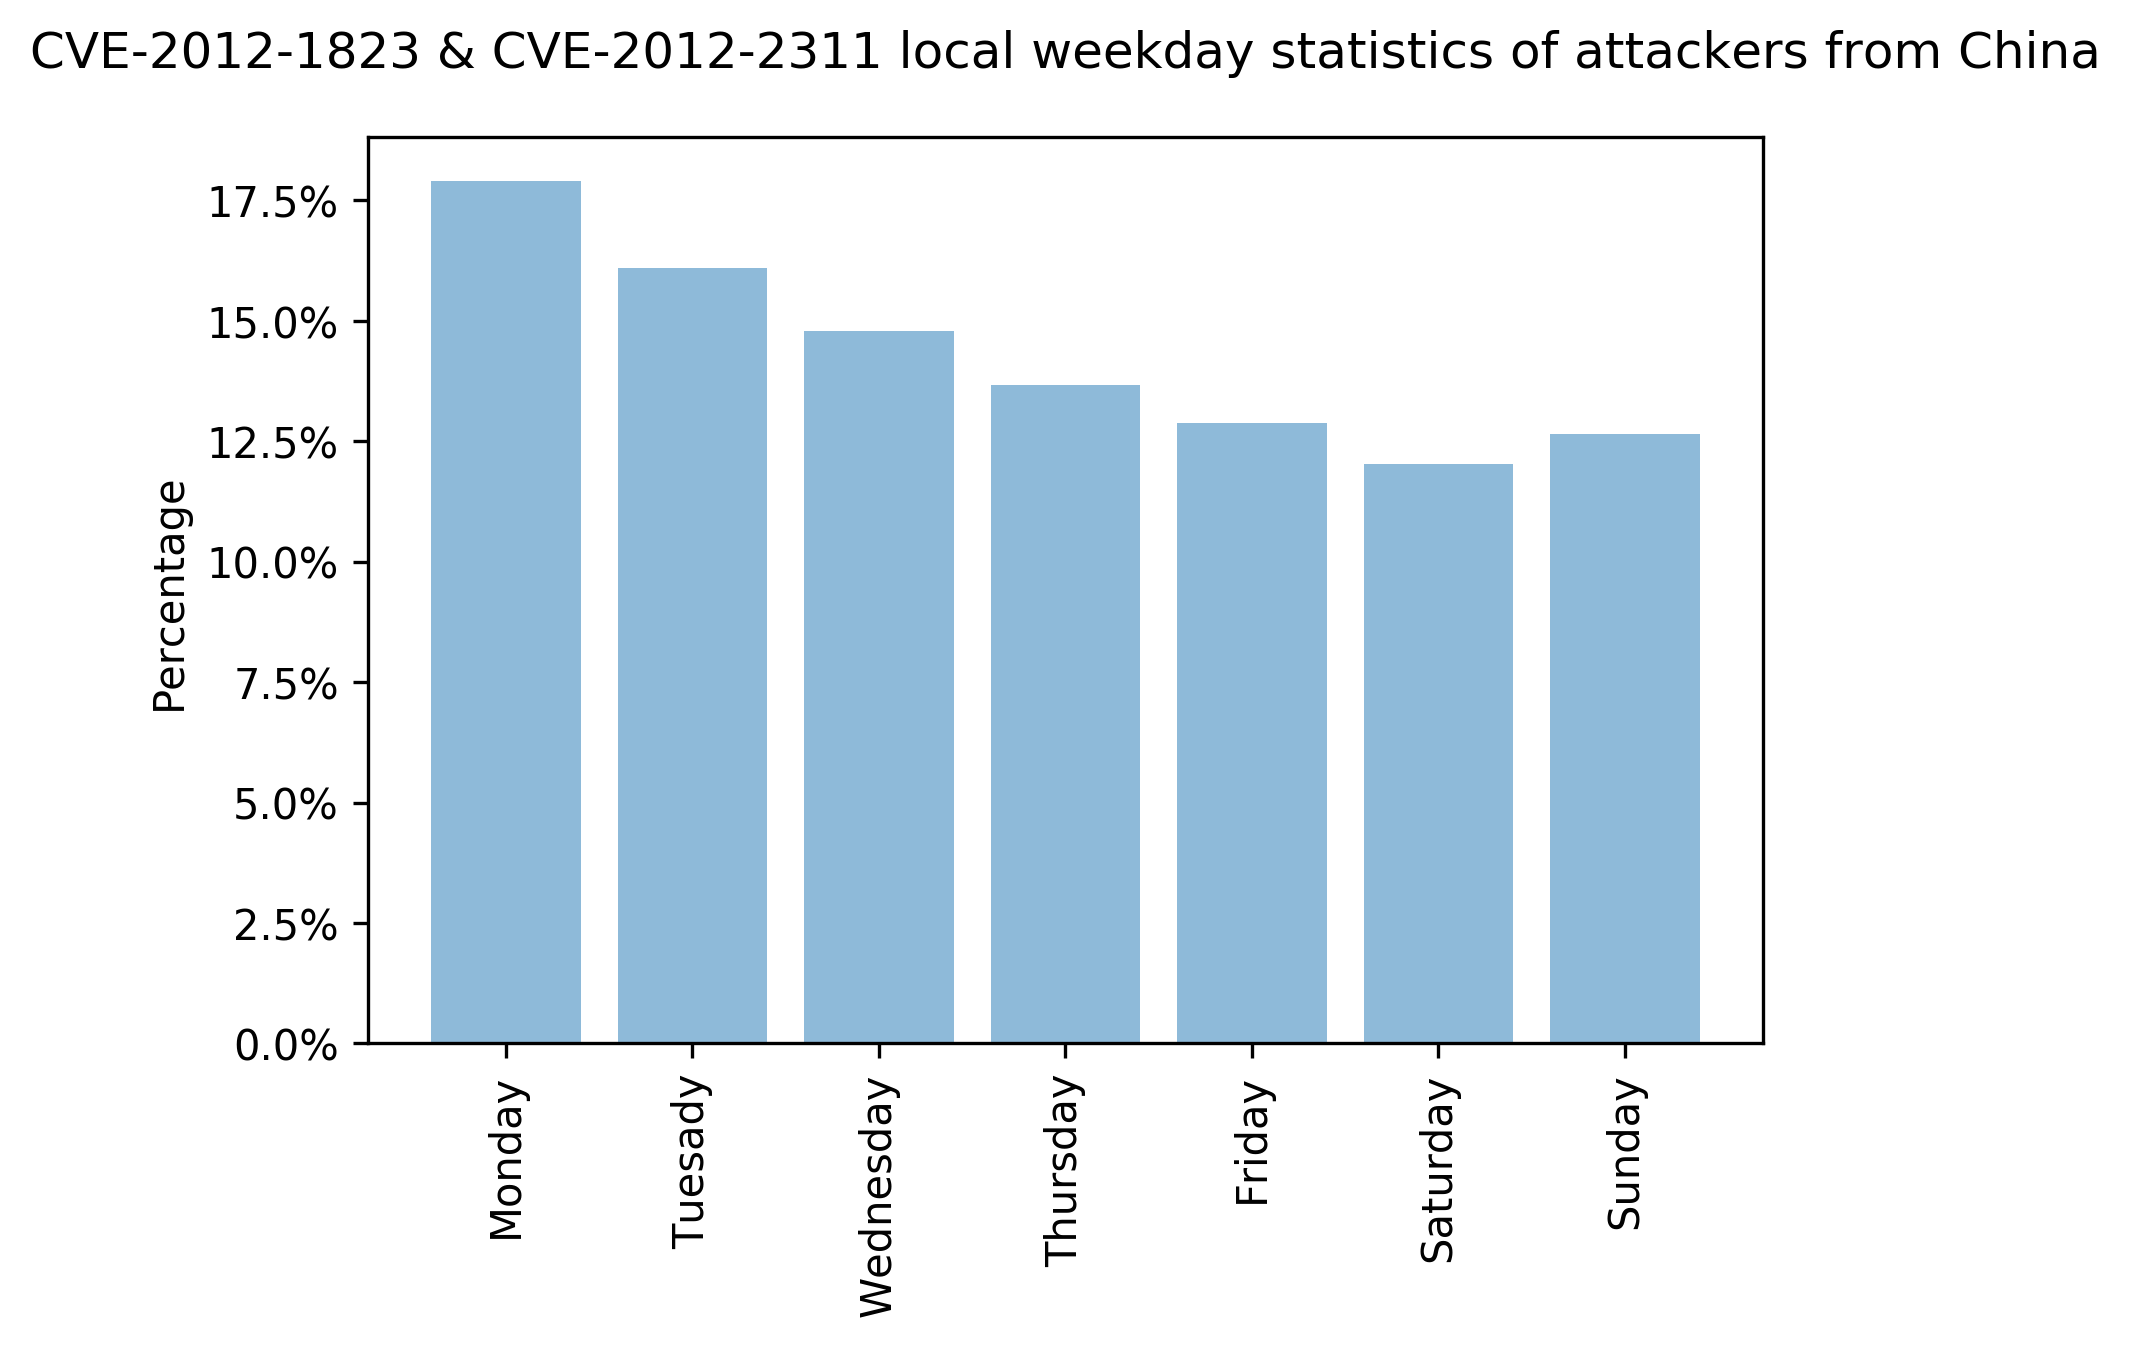 CVE-2012-1823 & CVE-2012-2311 local weekday statistics of attackers from China. The X-axis represents days of the week and the Y-axis represents the percentages of attacks observed on those days.